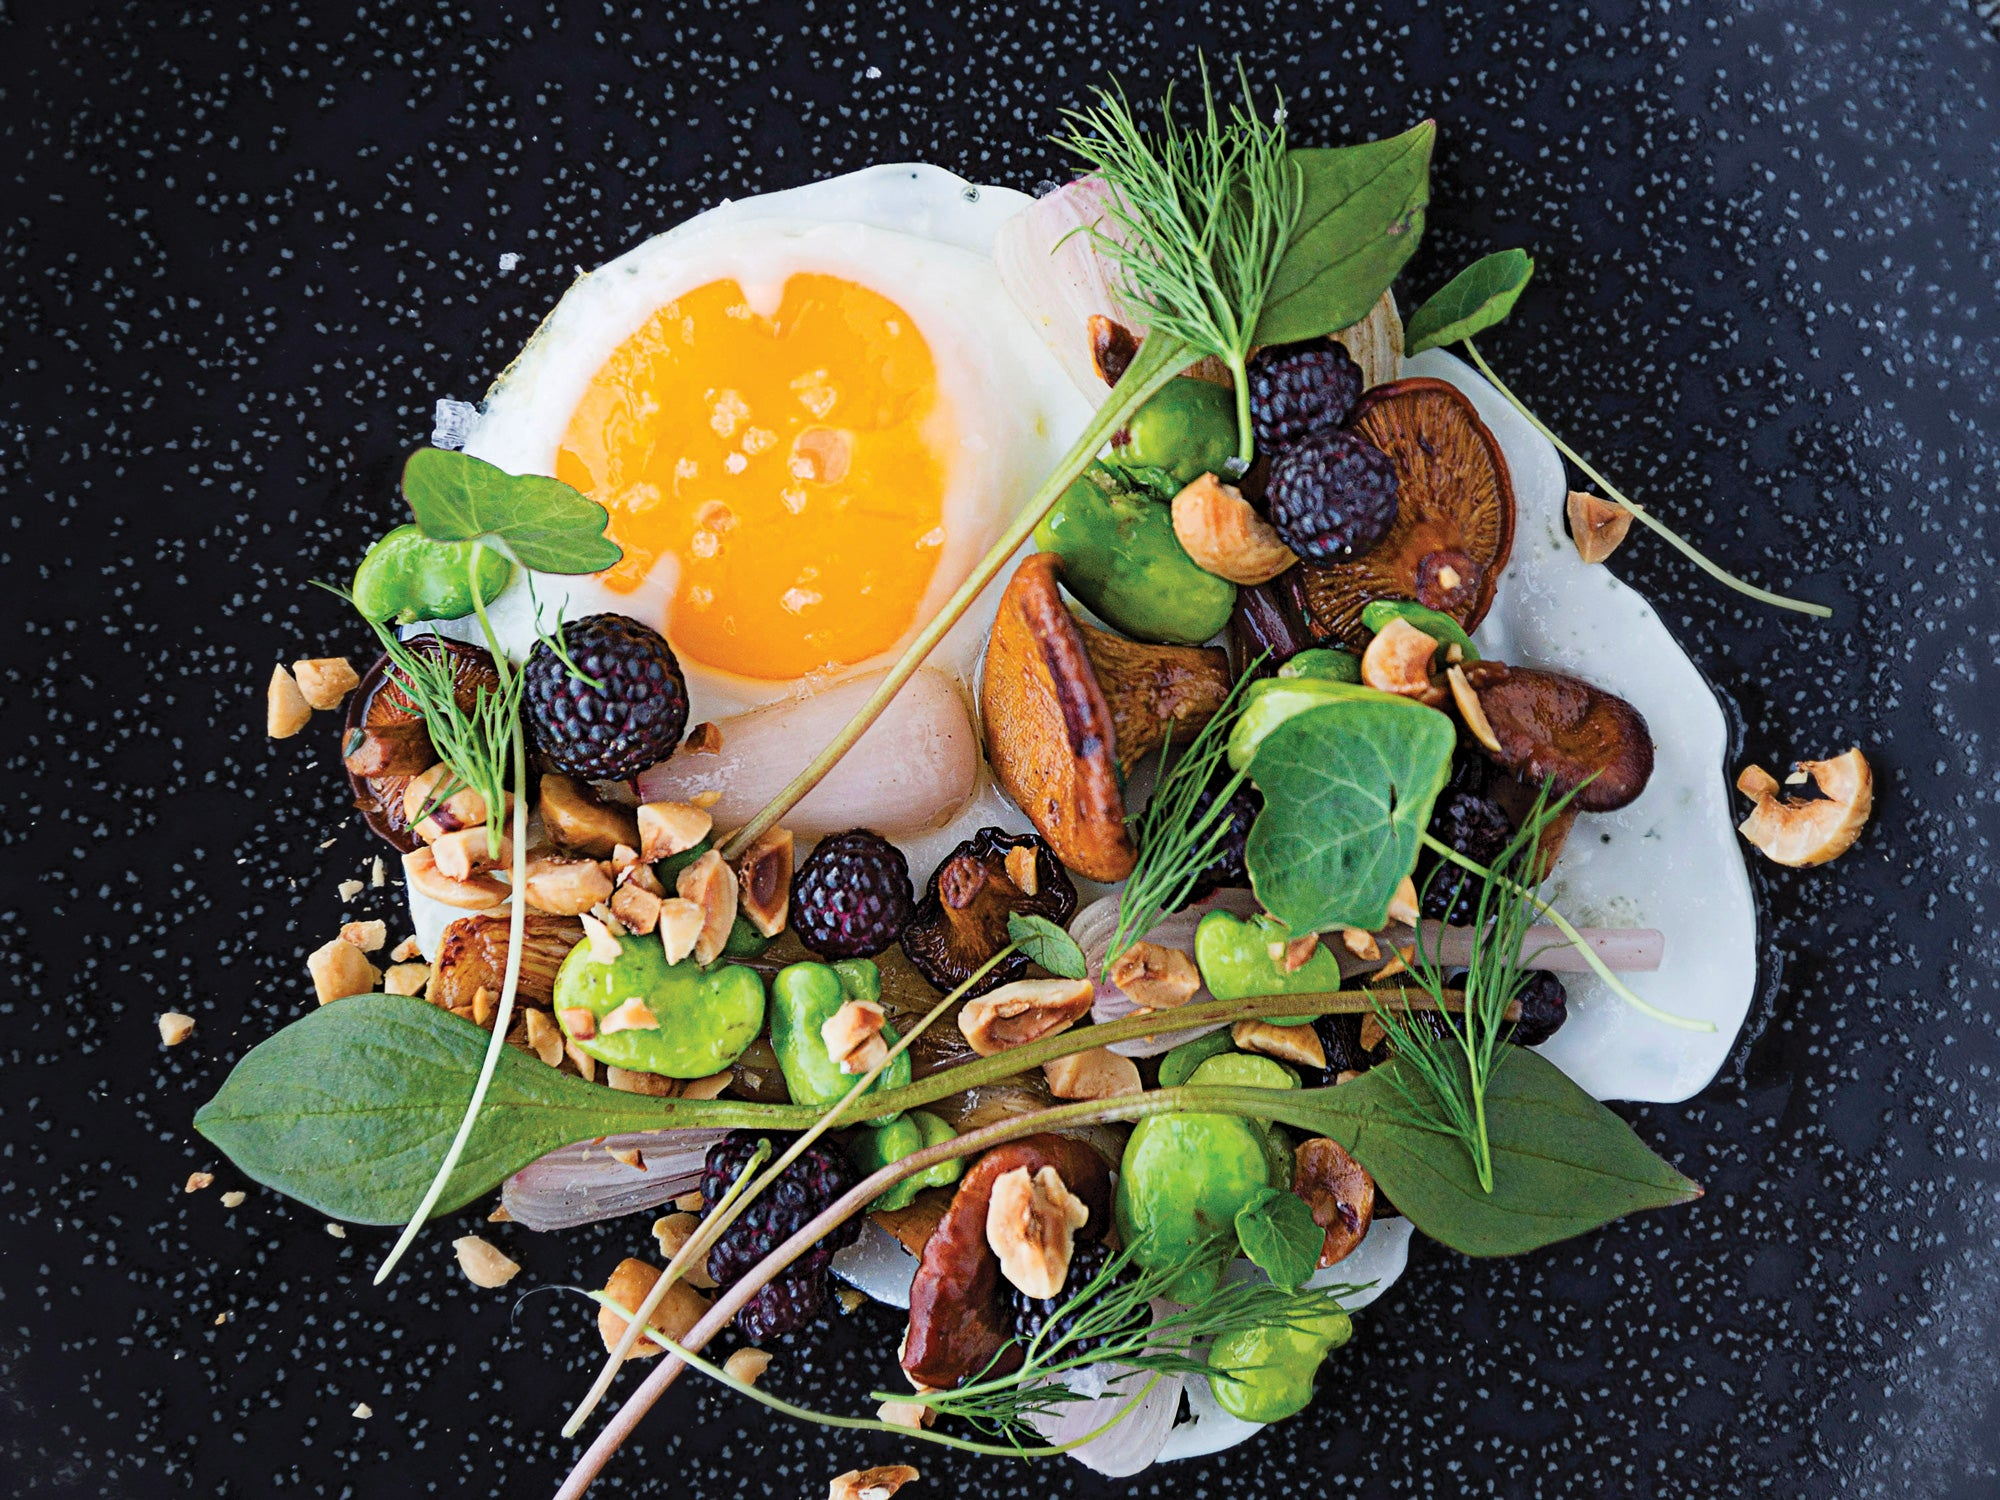 Minneapolis, Fried Egg with Hazelnuts, Chanterelles, Green Garlic and Blackberries